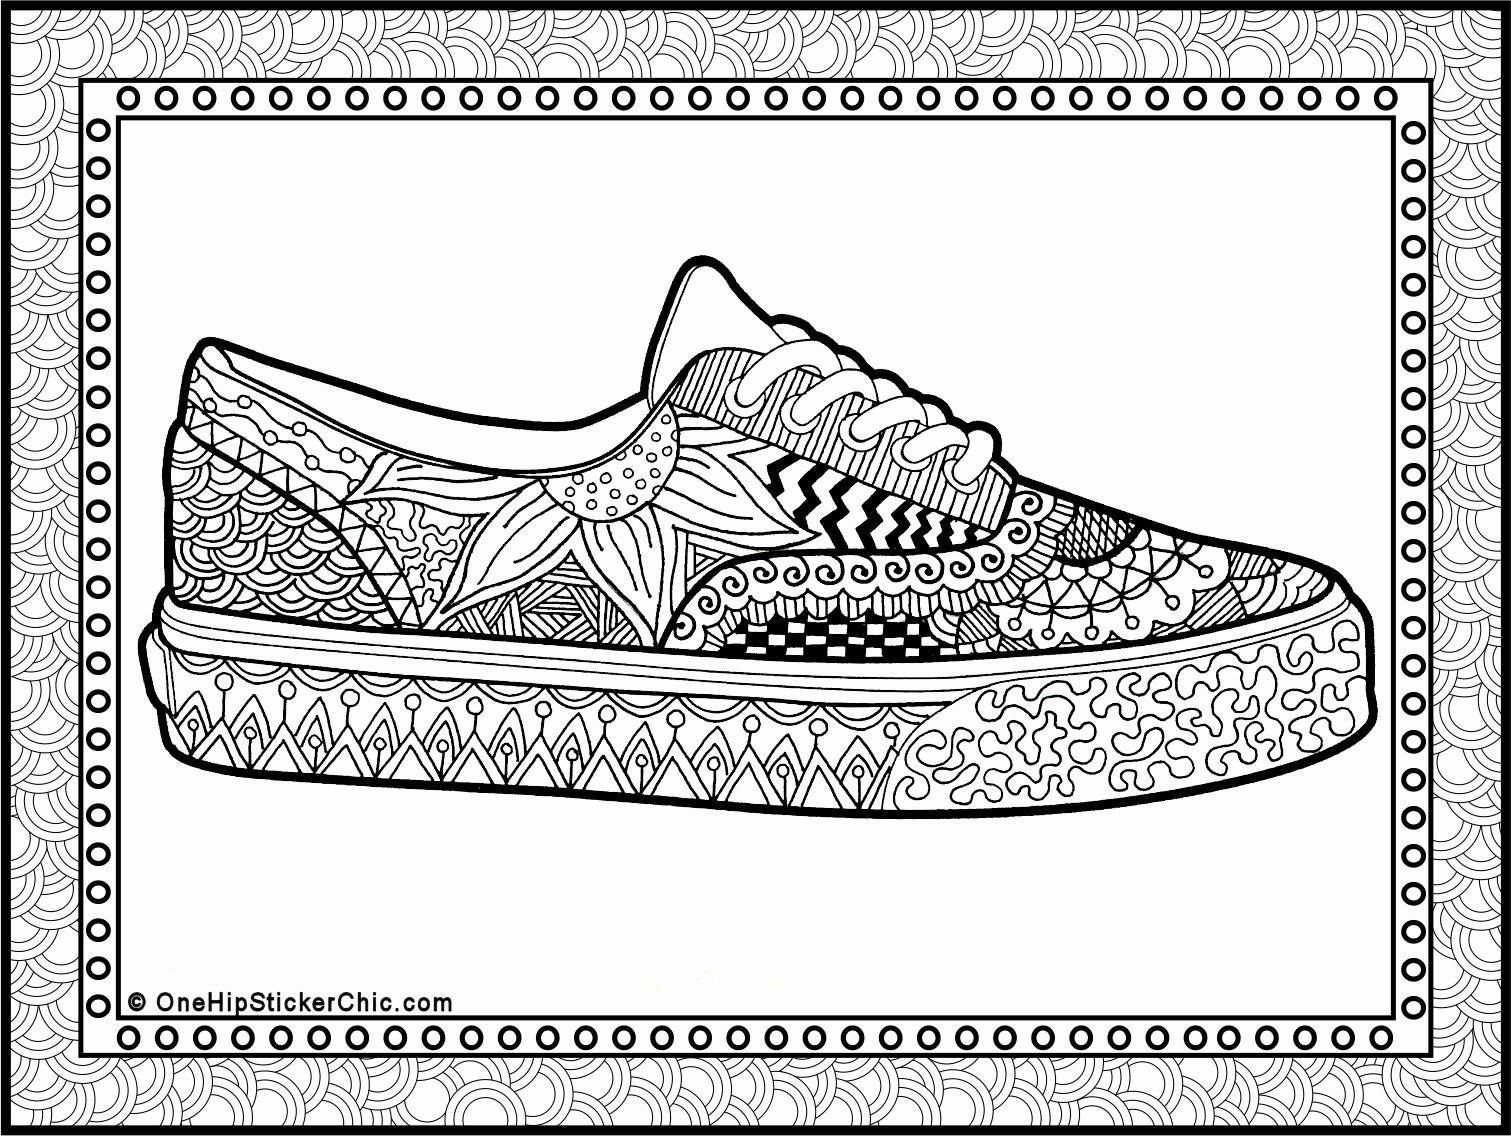 coloring pages for adults shoes coloring pages for adults shoes coloring for adults shoes pages